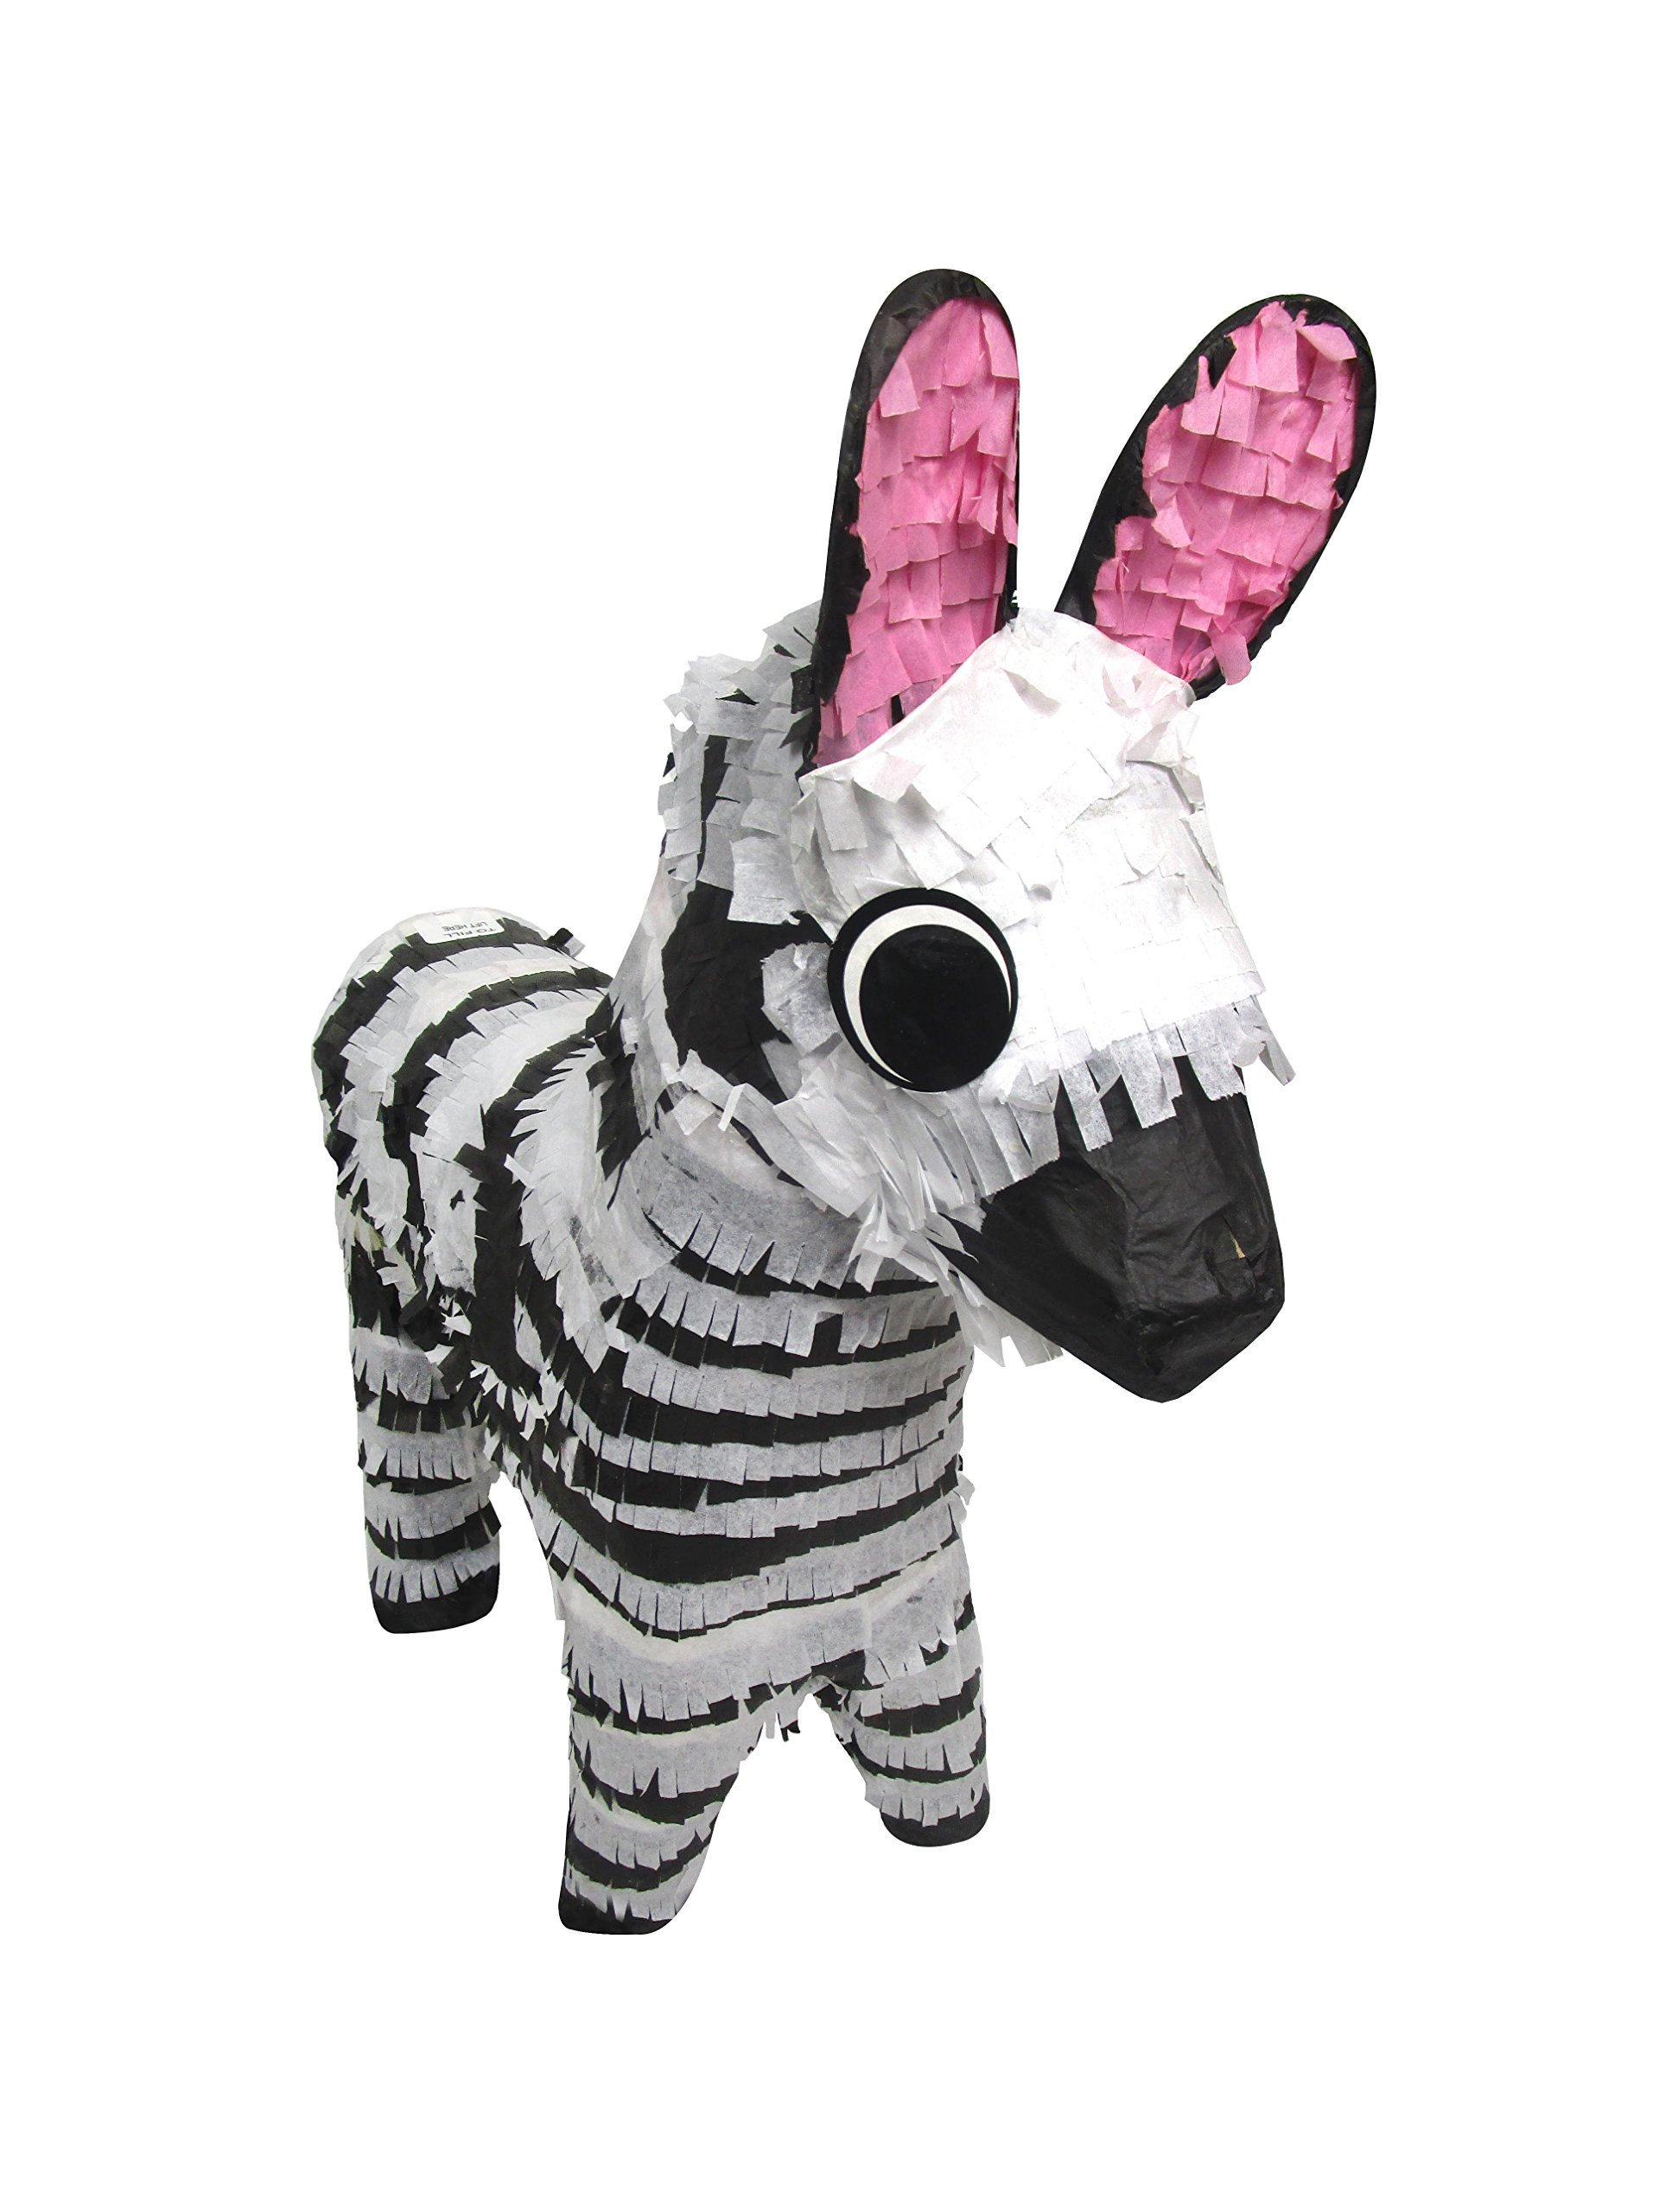 Zebra Pinata, 22'' Party Game, Decoration Centerpiece and Photo Prop